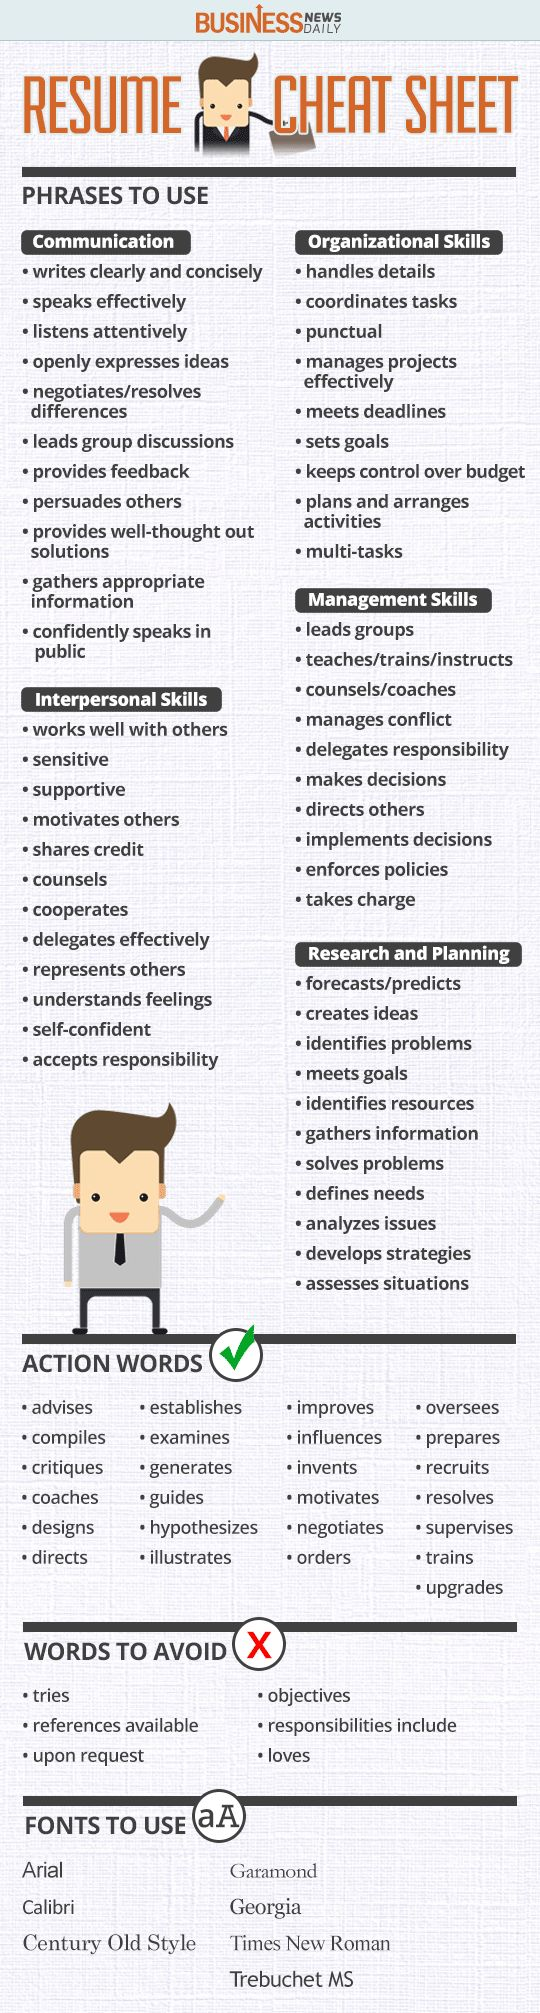 Opposenewapstandardsus  Splendid  Ideas About Resume On Pinterest  Cv Format Resume Cv And  With Outstanding Resume Cheat Sheet Infographic Andrews Almost Done With A Complete Unit On Employment Which With Awesome Effective Resume Formats Also Functional Resume Template Word In Addition Good Objective Statement For Resume And Babysitter Resume Sample As Well As Elegant Resume Template Additionally Objectives In Resume From Pinterestcom With Opposenewapstandardsus  Outstanding  Ideas About Resume On Pinterest  Cv Format Resume Cv And  With Awesome Resume Cheat Sheet Infographic Andrews Almost Done With A Complete Unit On Employment Which And Splendid Effective Resume Formats Also Functional Resume Template Word In Addition Good Objective Statement For Resume From Pinterestcom